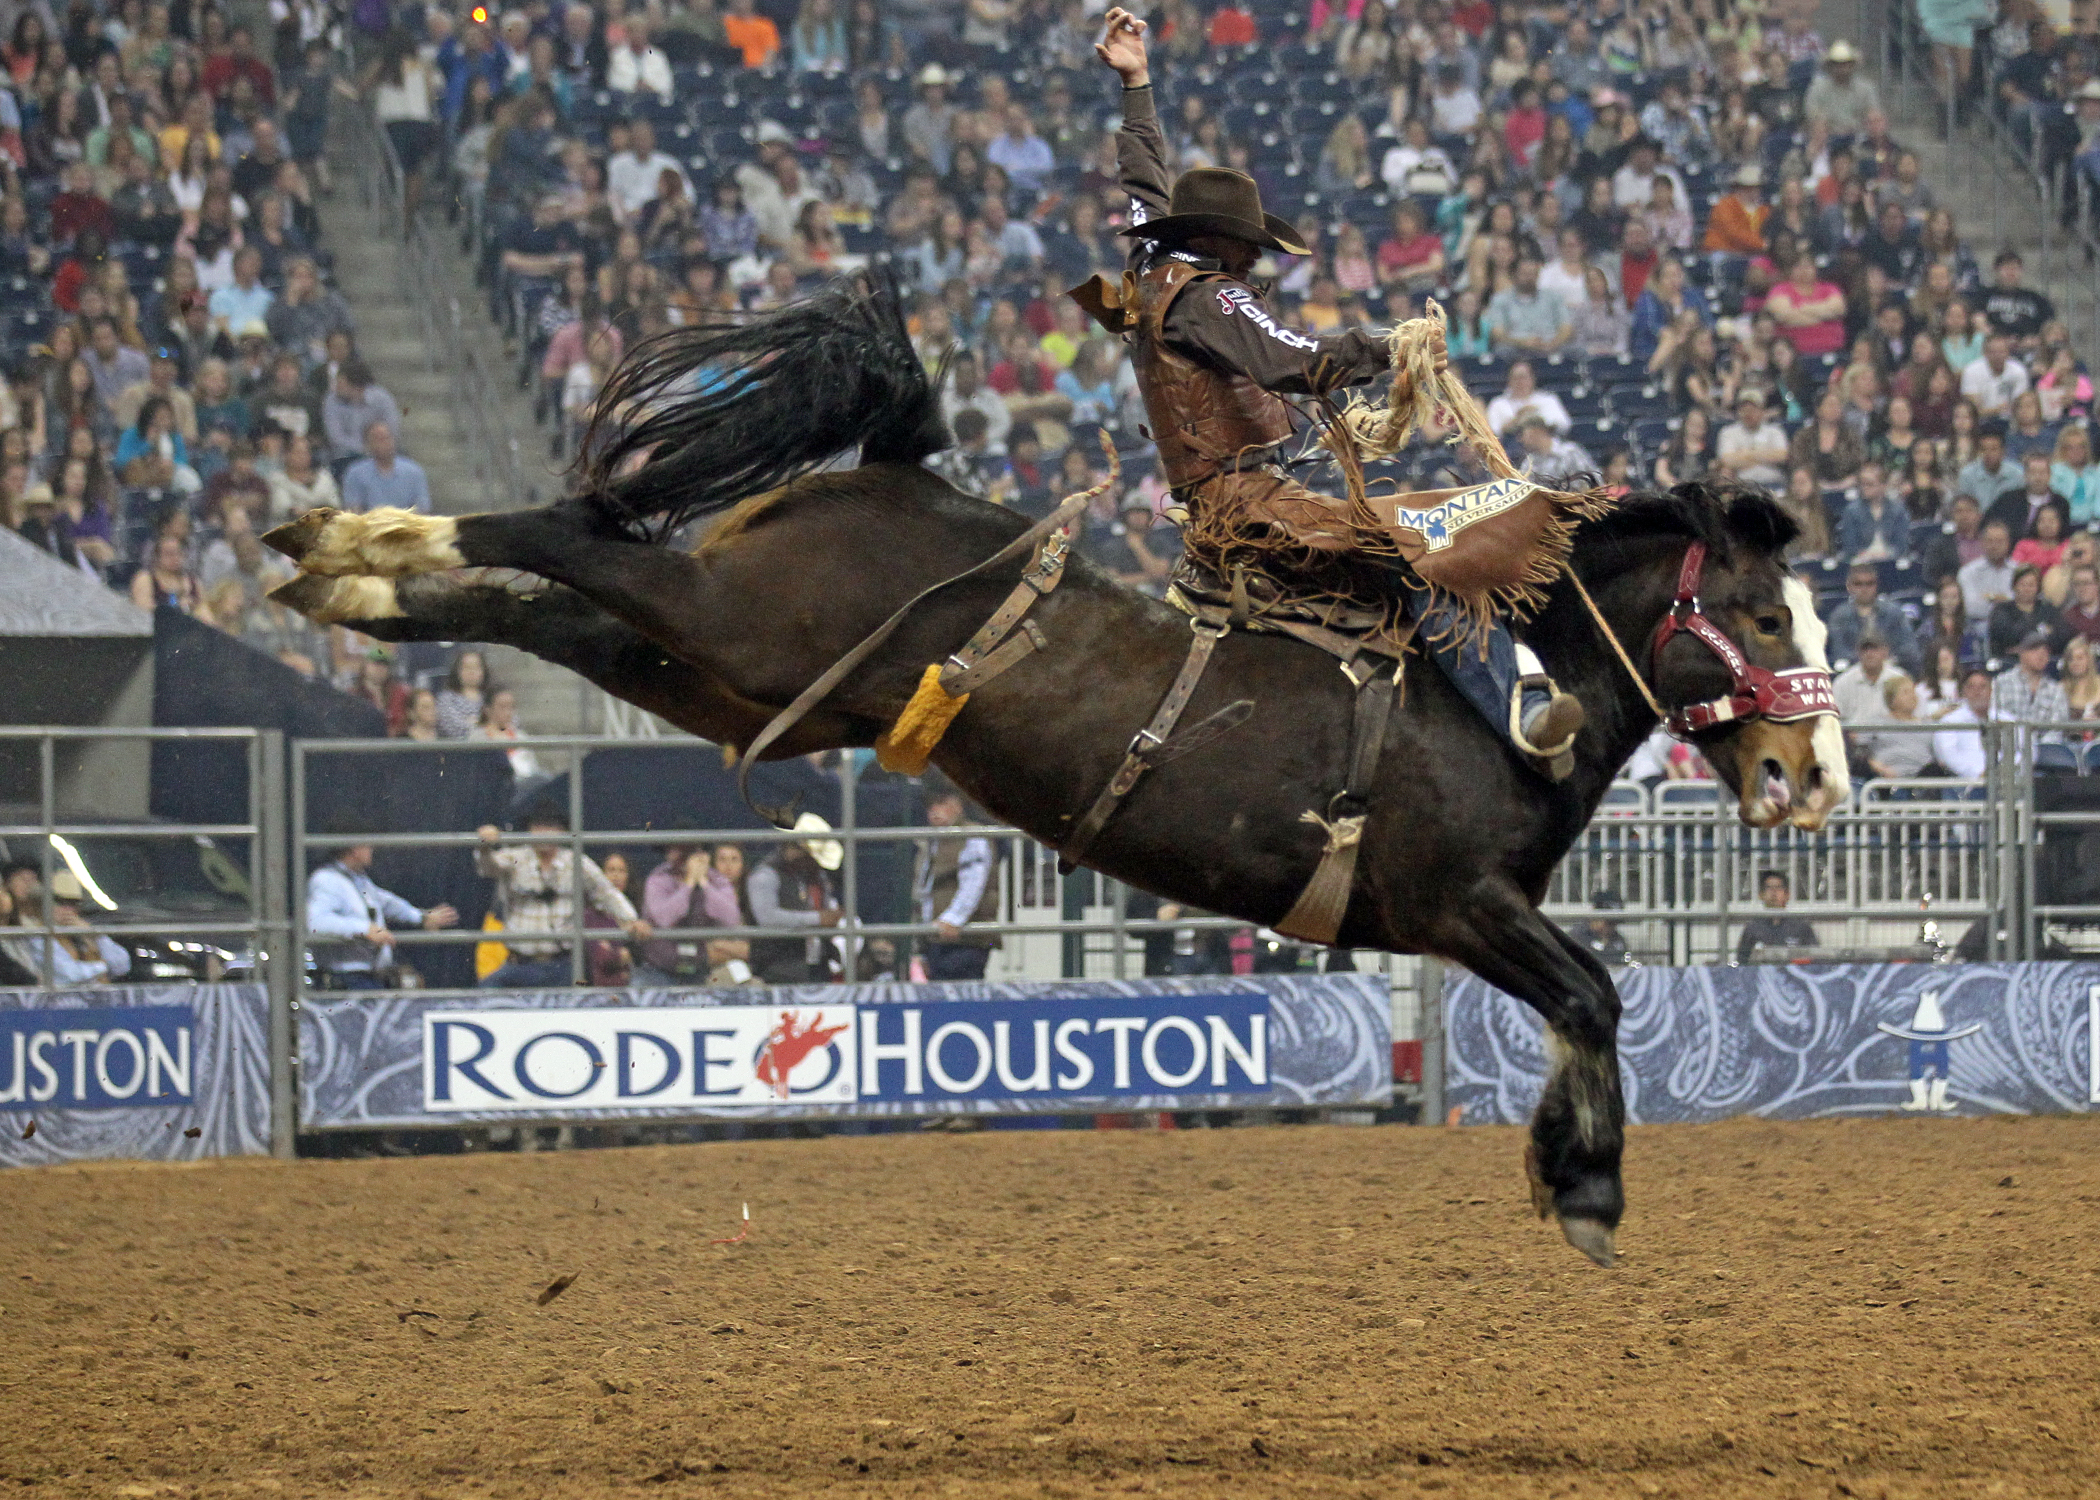 Stampede Horse Shatters Arena Record In Houston Blog